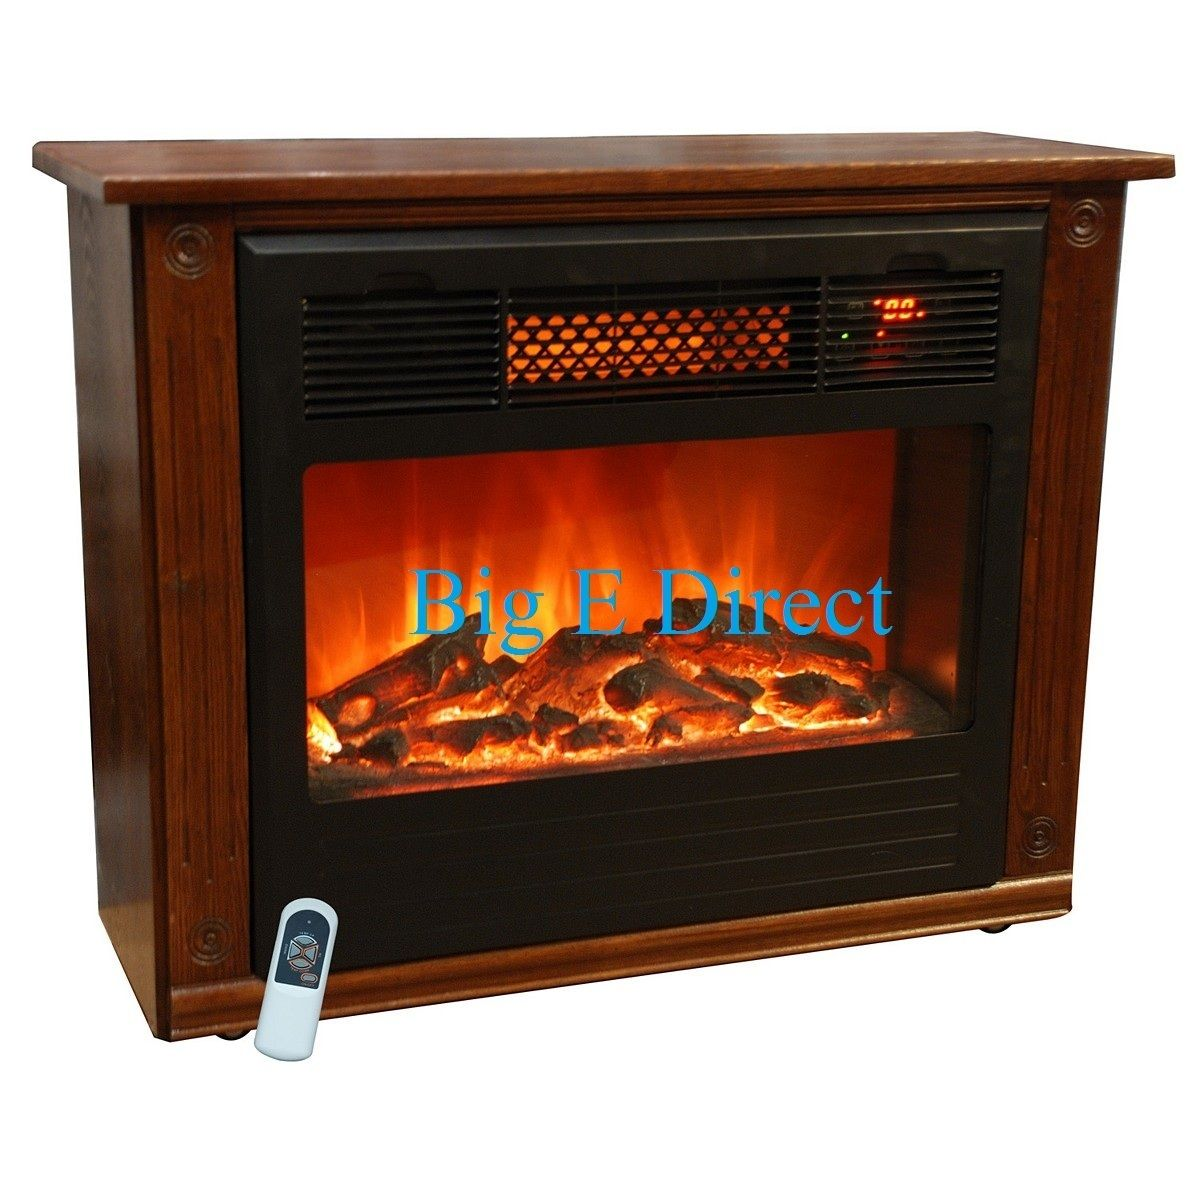 Compact Electric Room Infrared Quartz Fireplace Portable Heater Remote